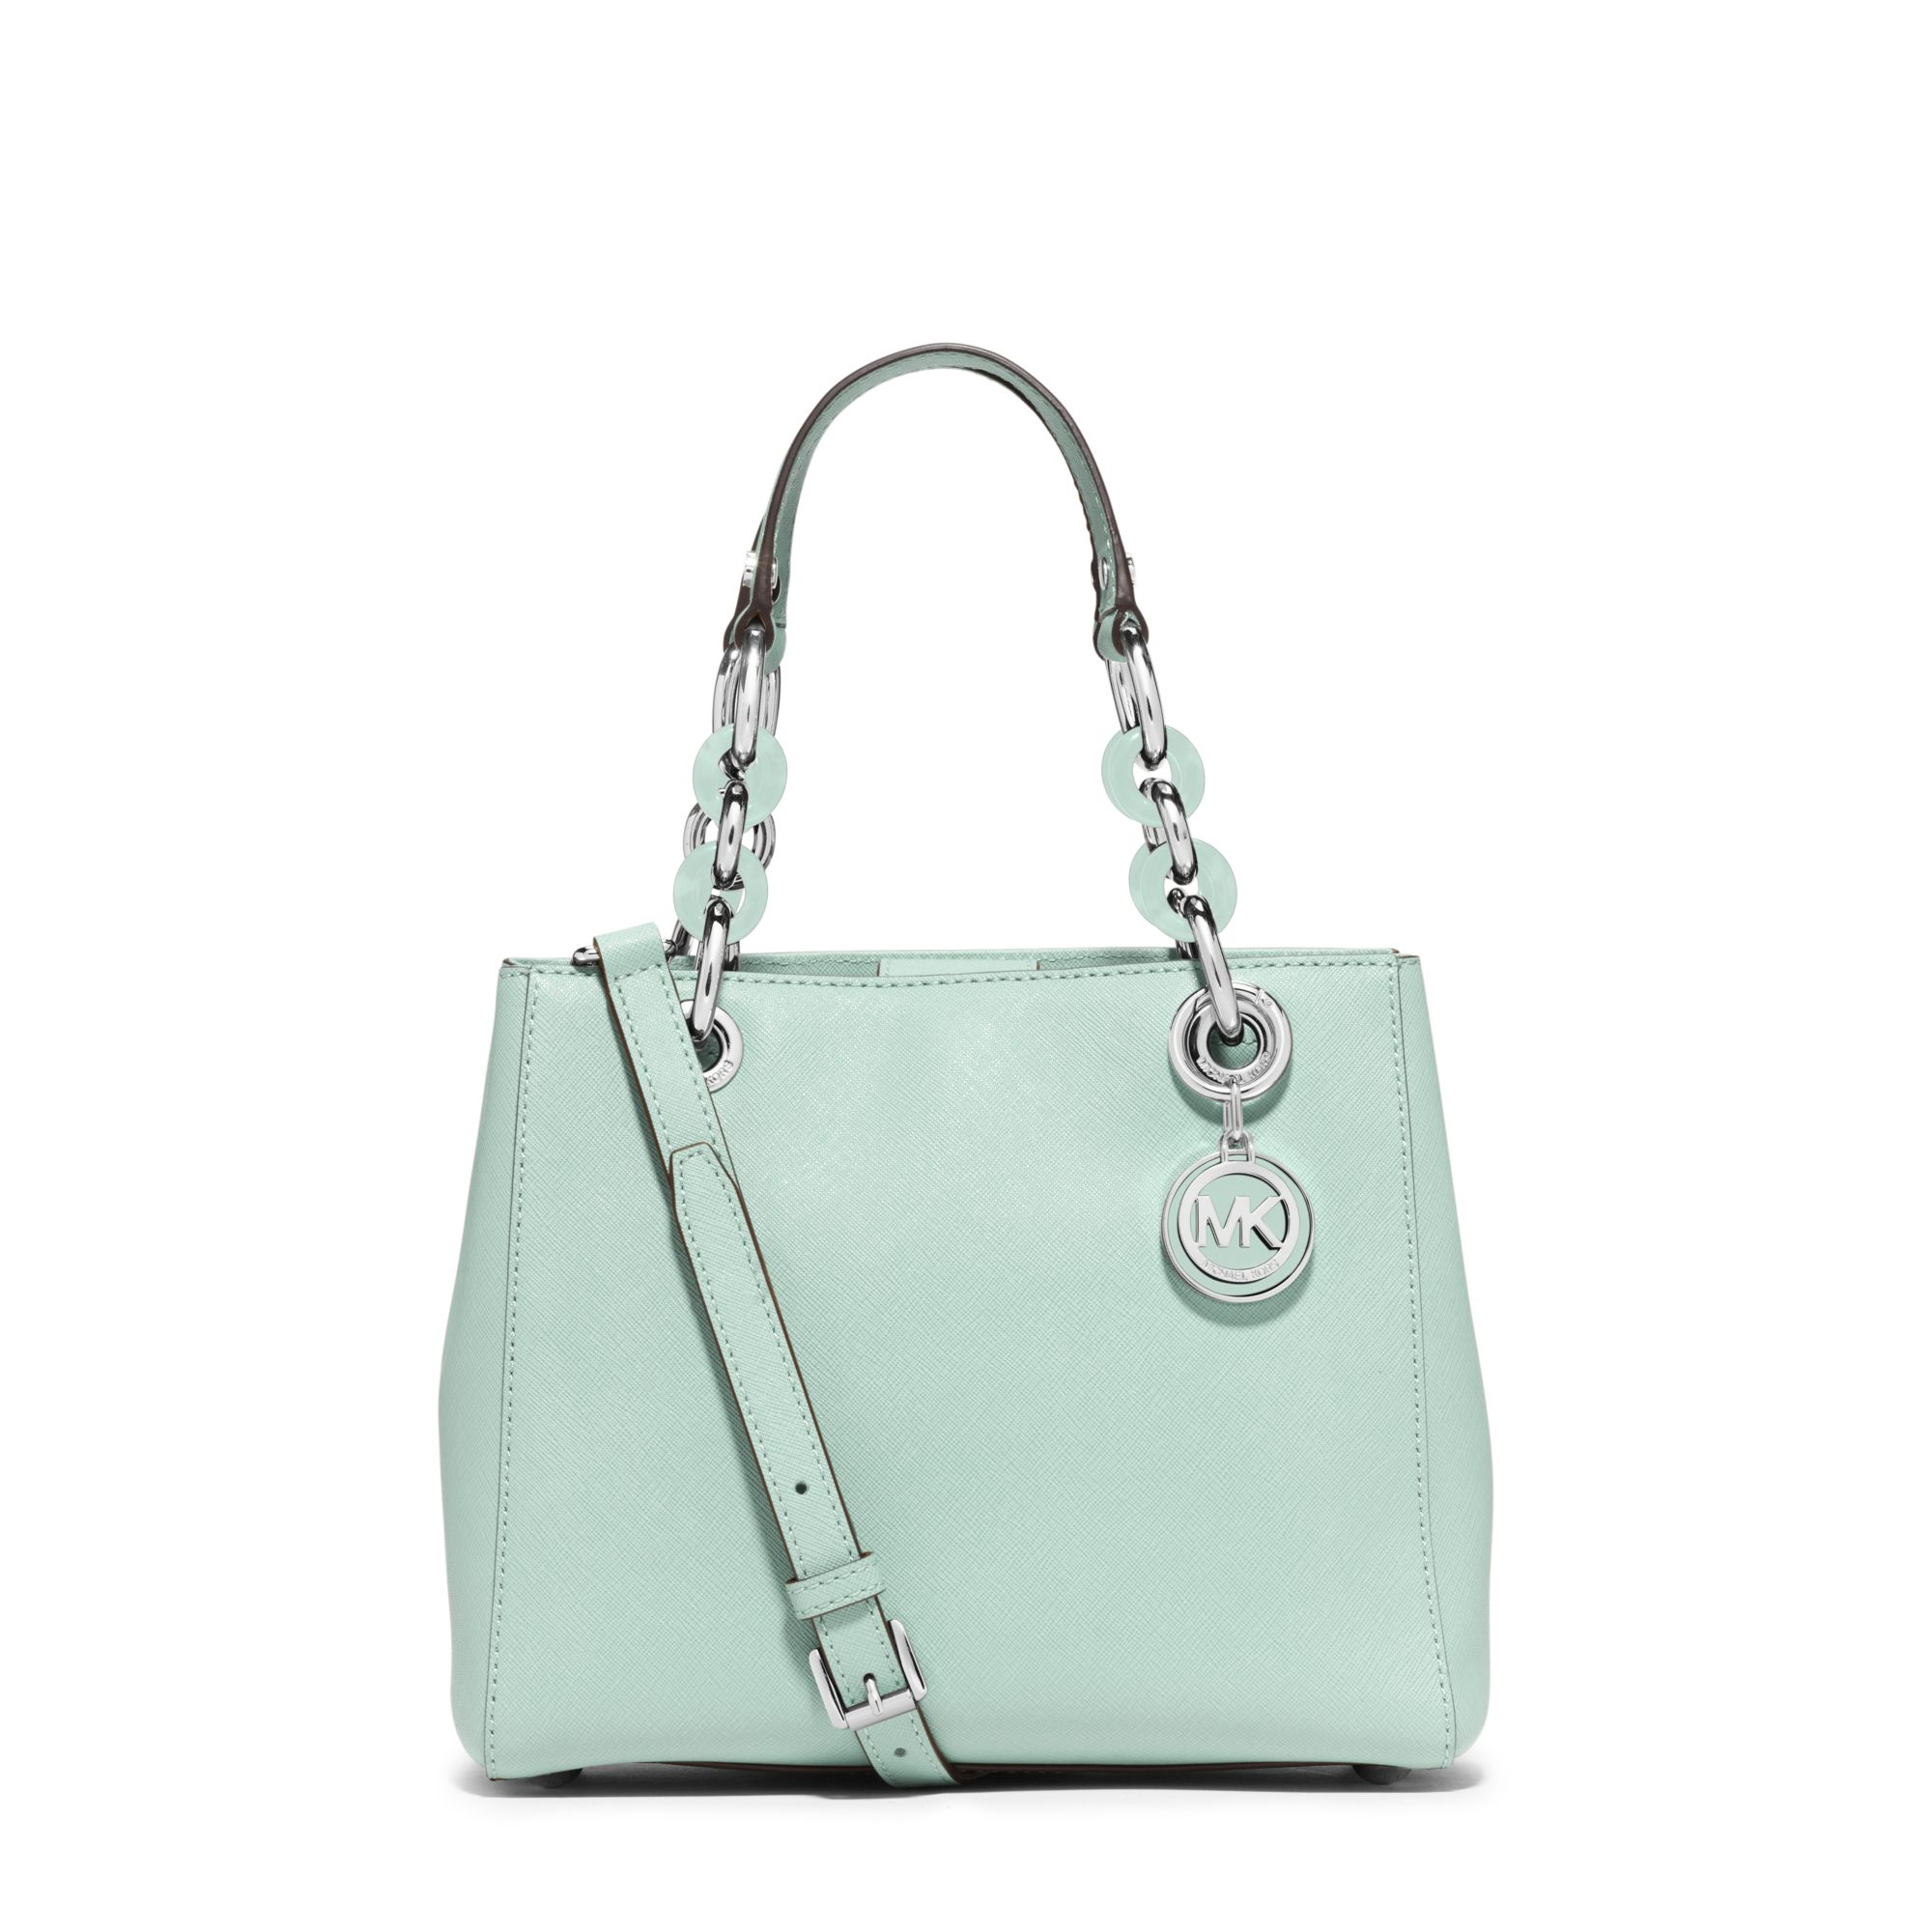 1c97156e10db Michael Kors Cynthia Small Saffiano Leather Satchel in Green - Lyst